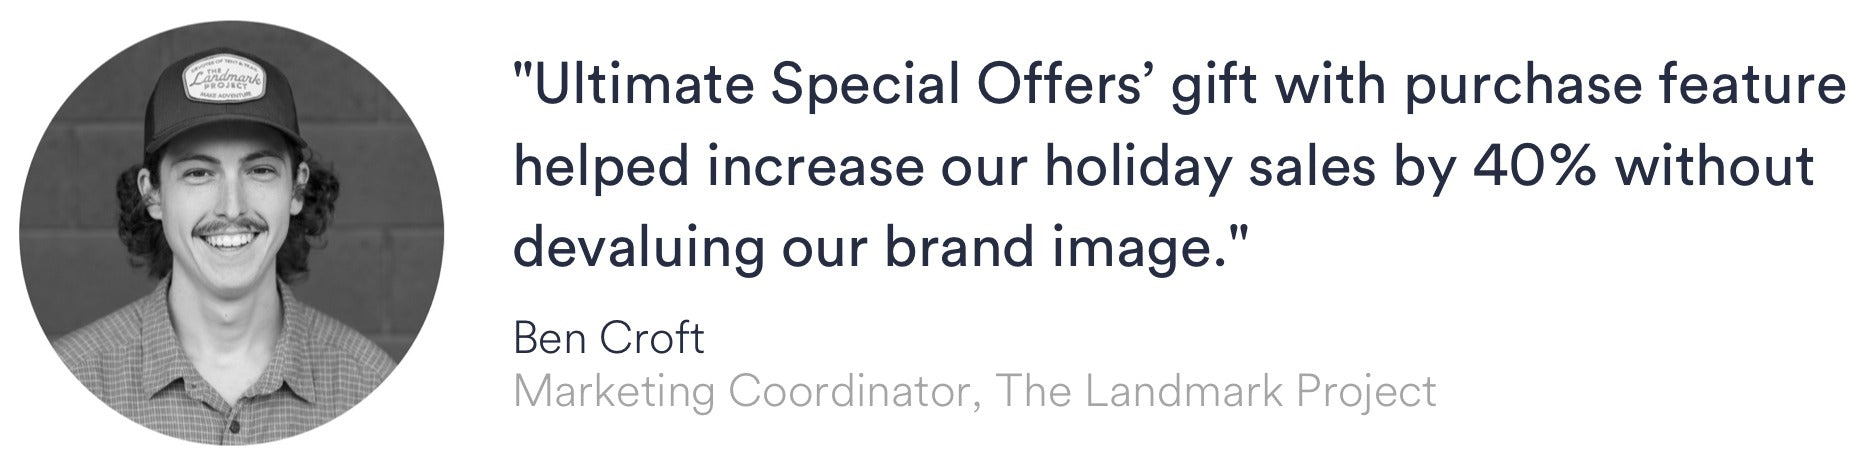 Quote from The Landmark Project on how Ultimate Special Offers helped increase their holiday revenue by 40 percent